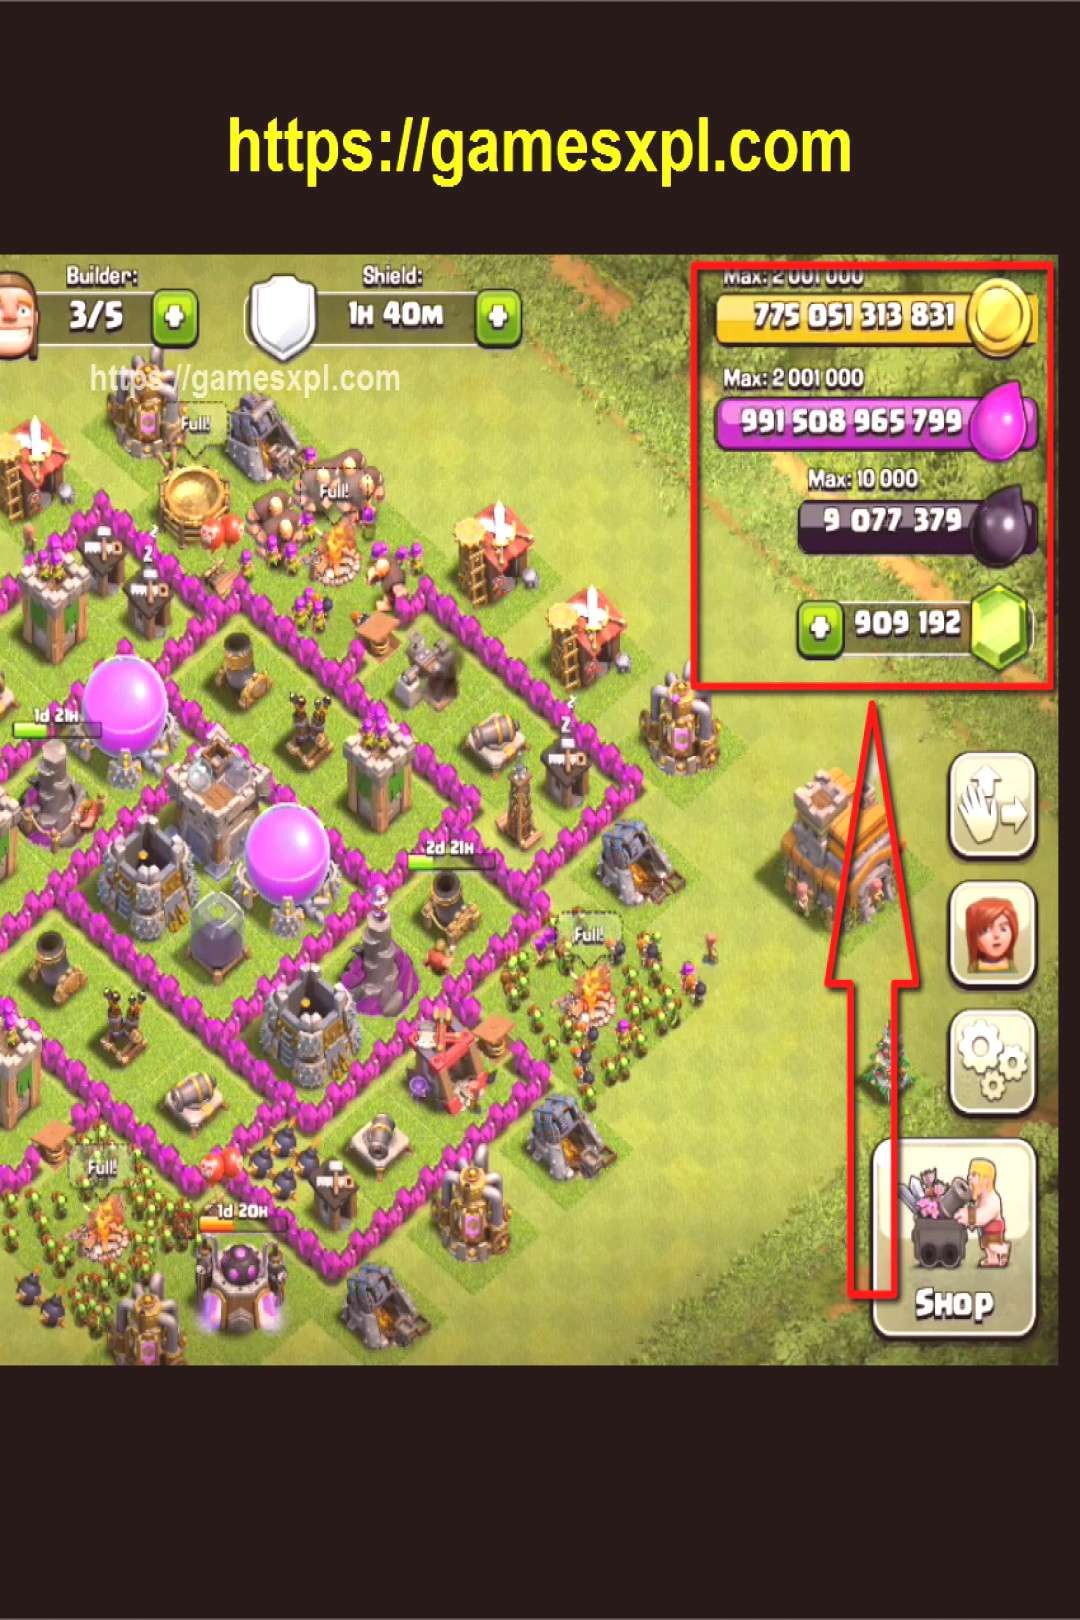 Clash of clans hack get unlimited gems gold elixir and